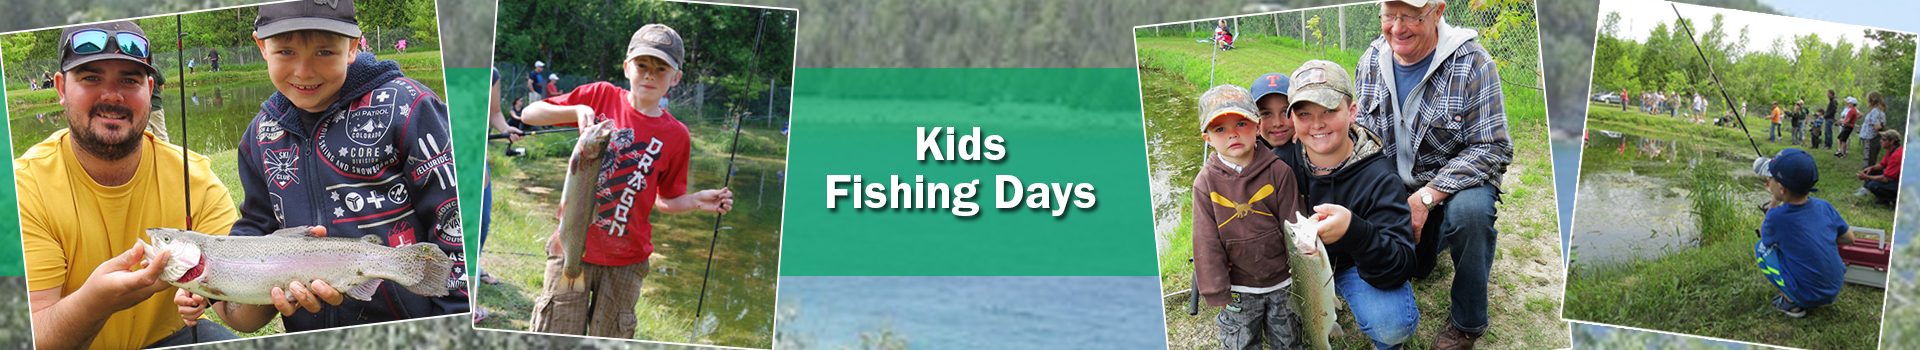 Kids-fishing-day-slide-bar